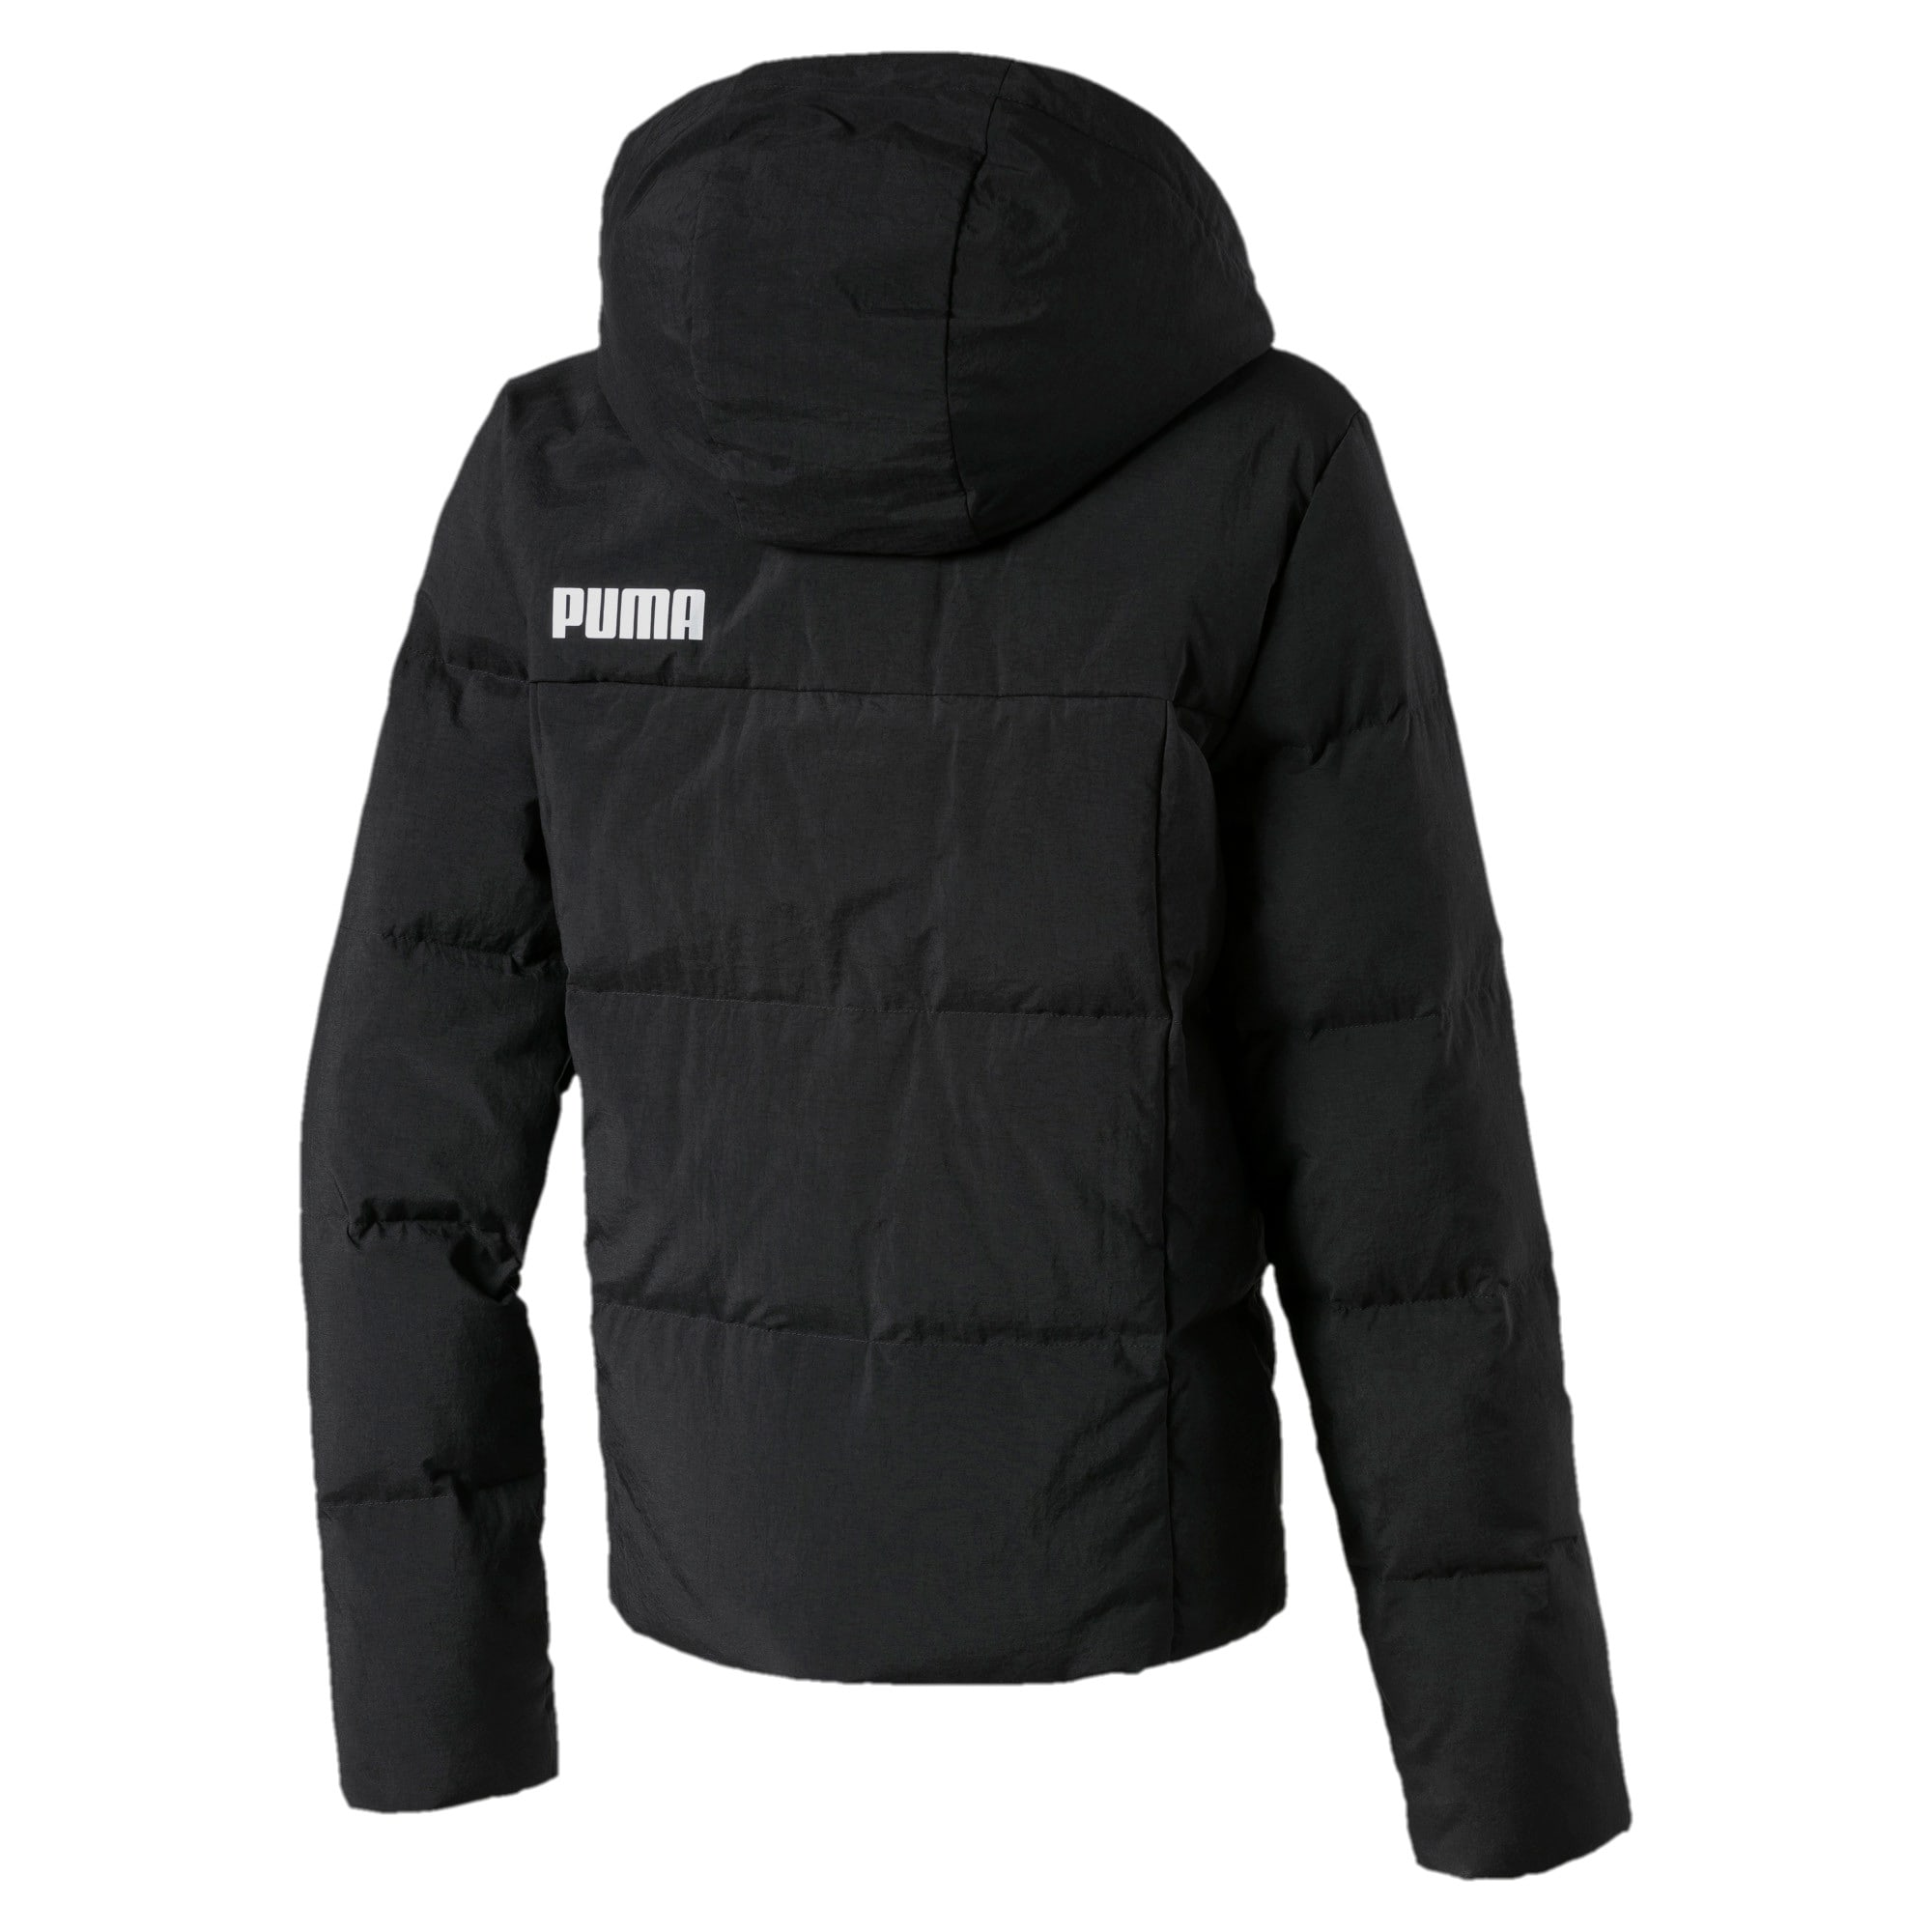 Thumbnail 2 of Style Jungen Daunenjacke, Puma Black, medium